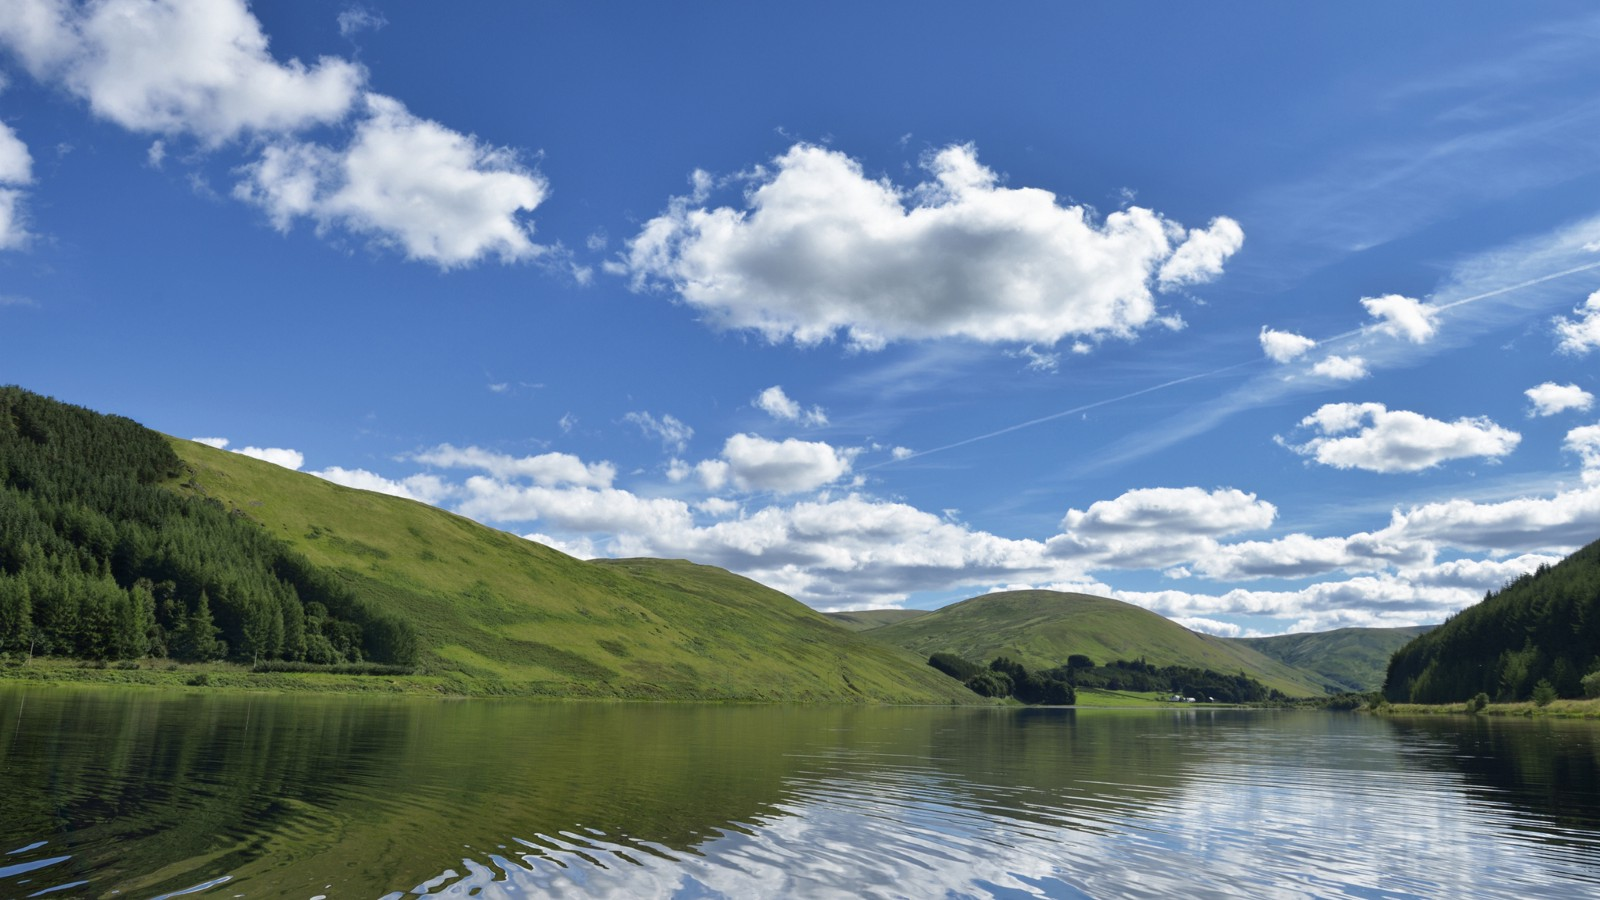 Part of St Mary's Loch near Moffat, Dumfries and Galloway, Scotland